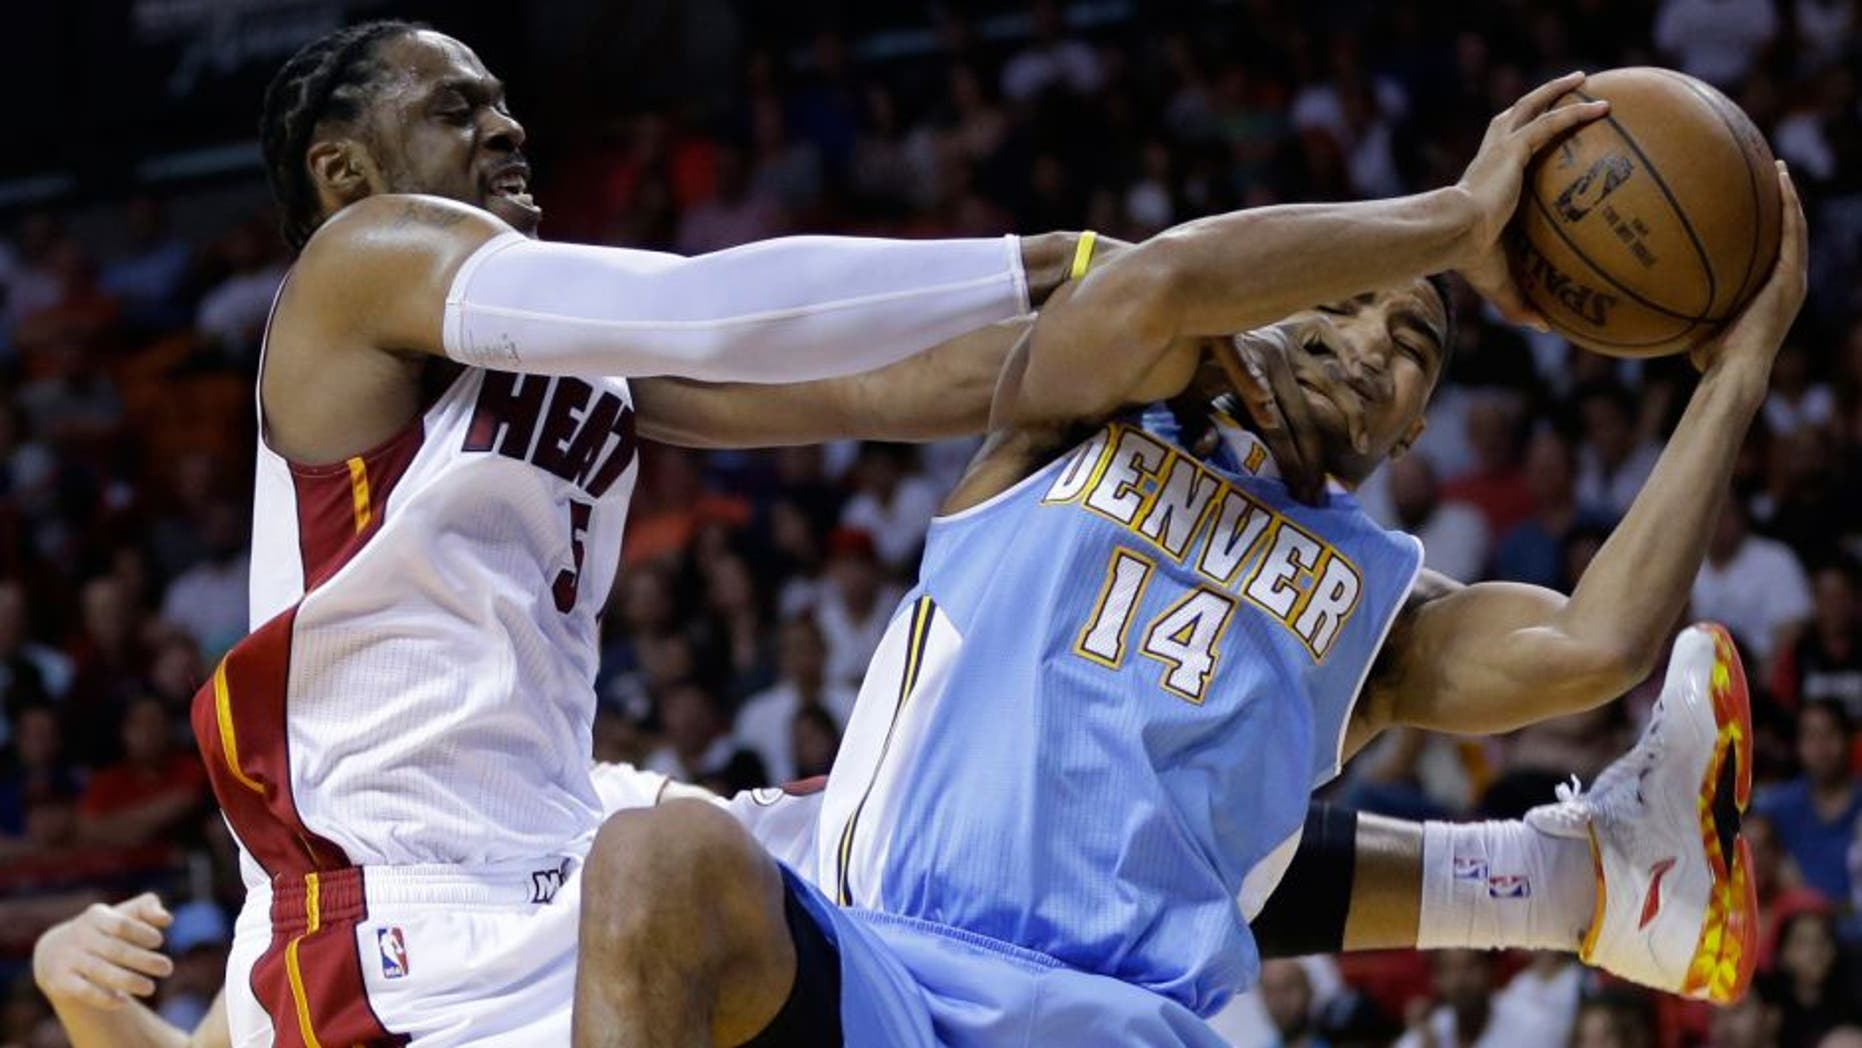 Miami Heat's Henry Walker, left, forces a jump ball as he defends Denver Nuggets' Gary Harris (14) during the second half of an NBA basketball game, Friday, March 20, 2015, in Miami. The Heat defeated the Nuggets 108-91. (AP Photo/Lynne Sladky)